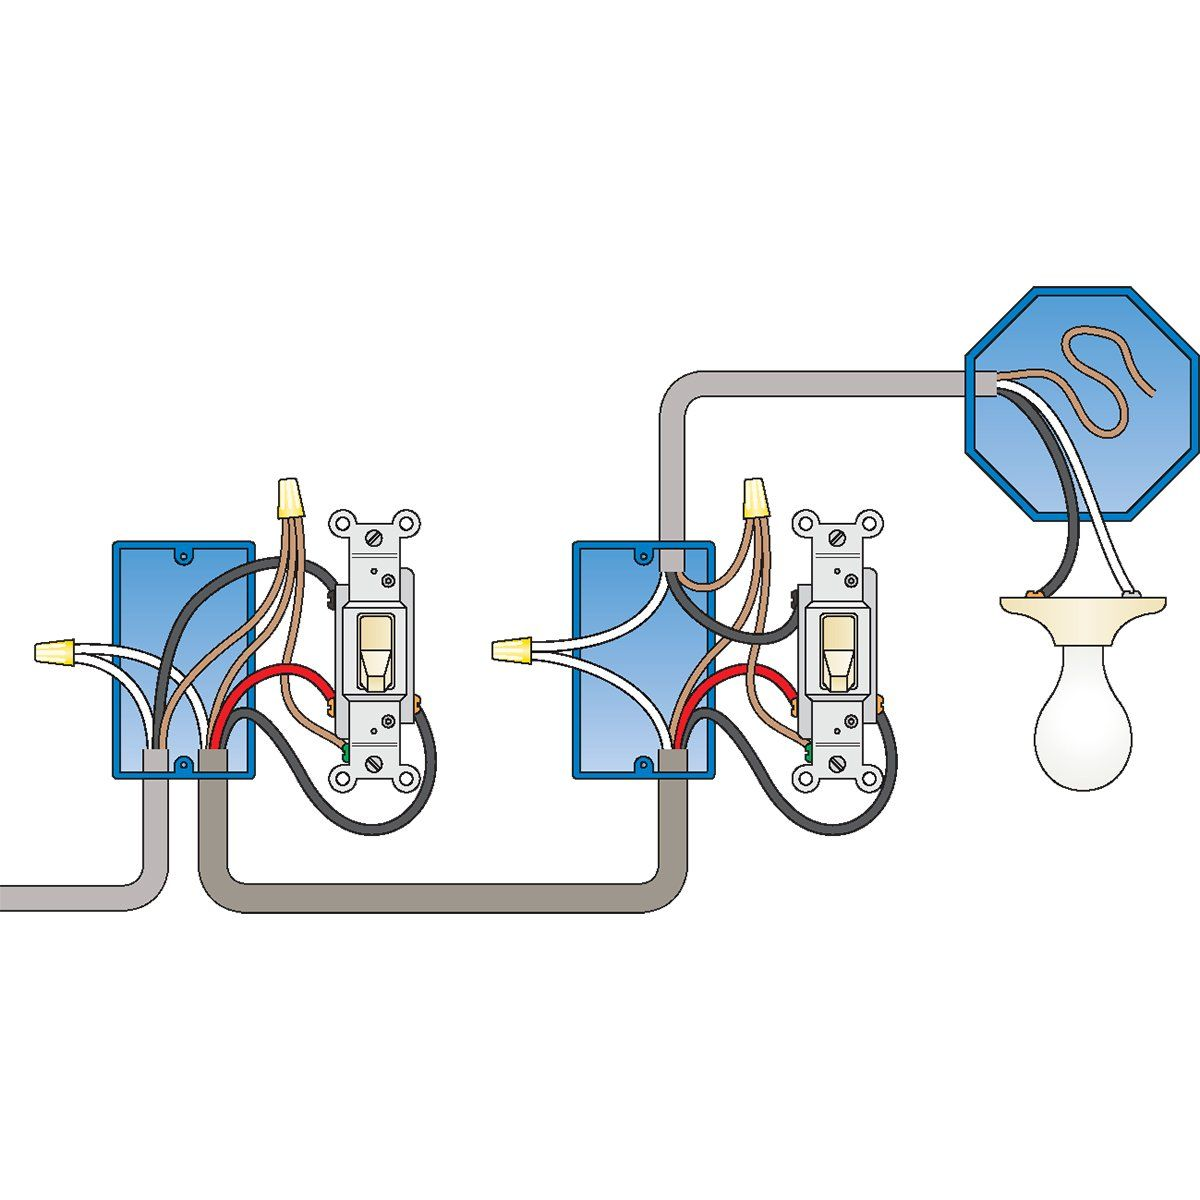 How To Wire A 3 Way Light Switch Light Switch Wiring 3 Way Switch Wiring Three Way Switch